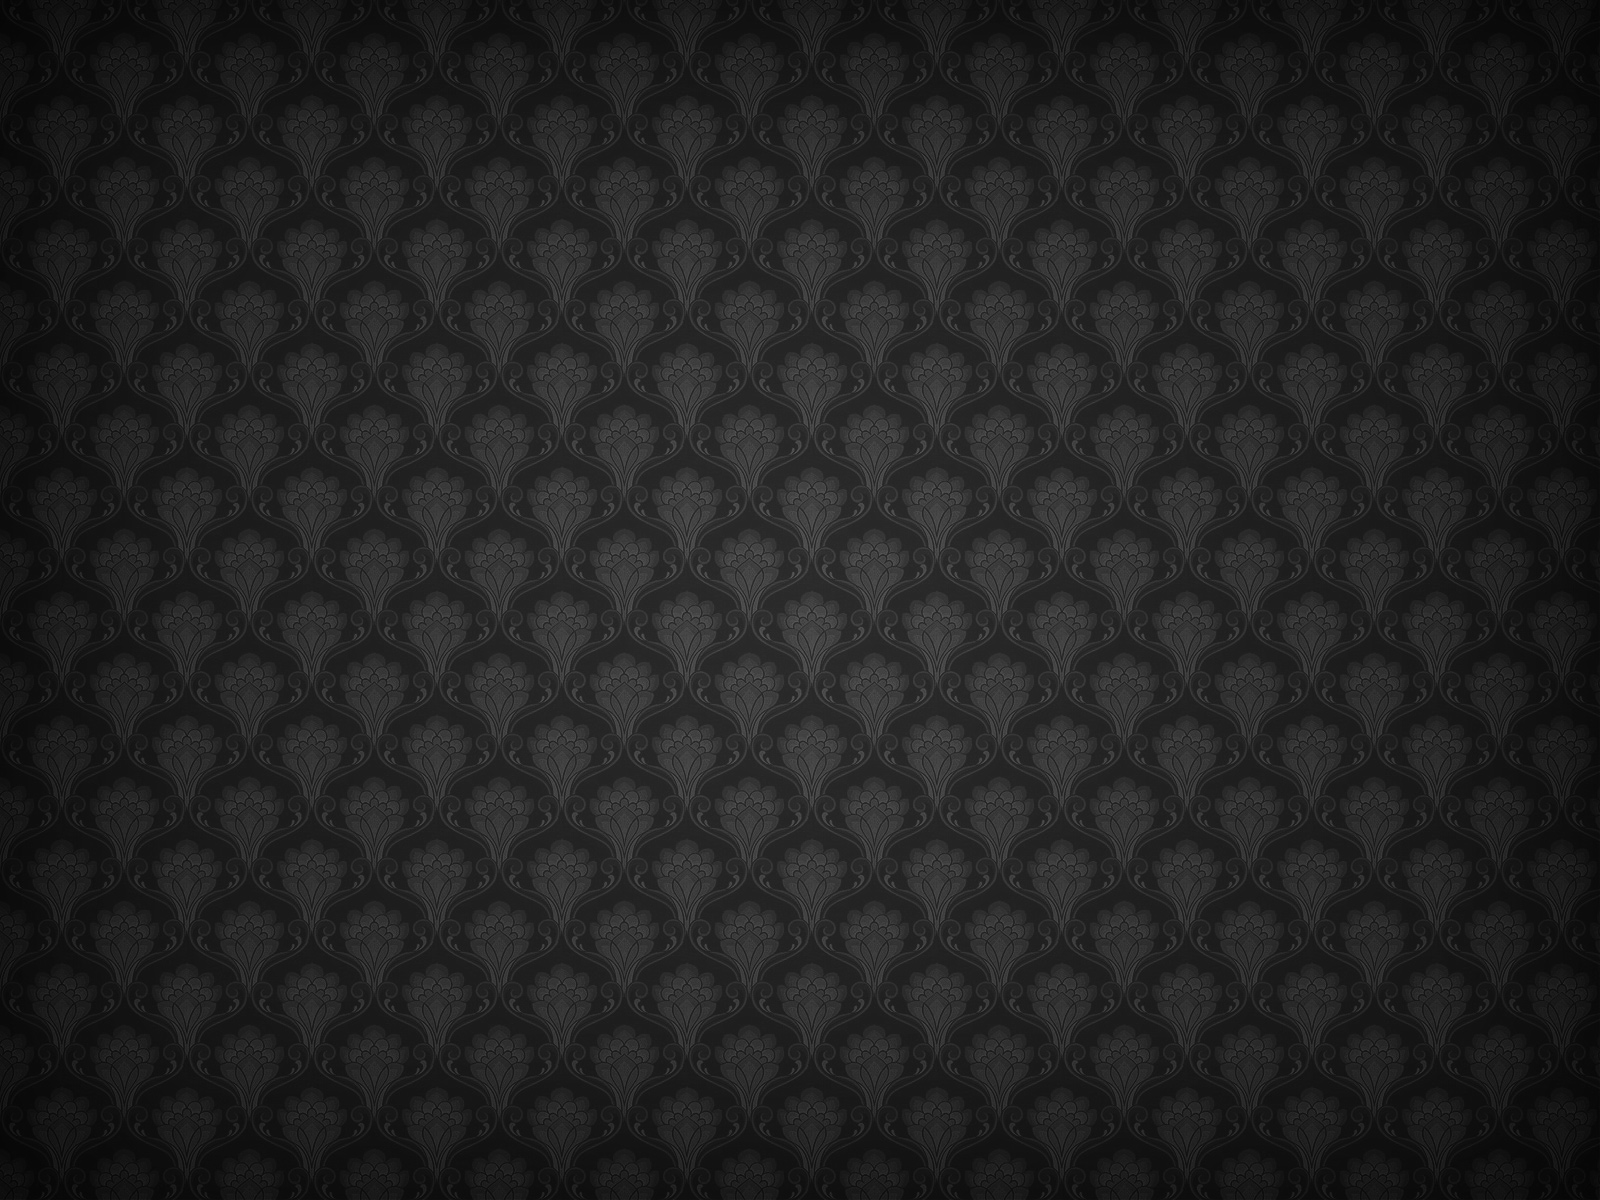 All Wallpapers: Patterns